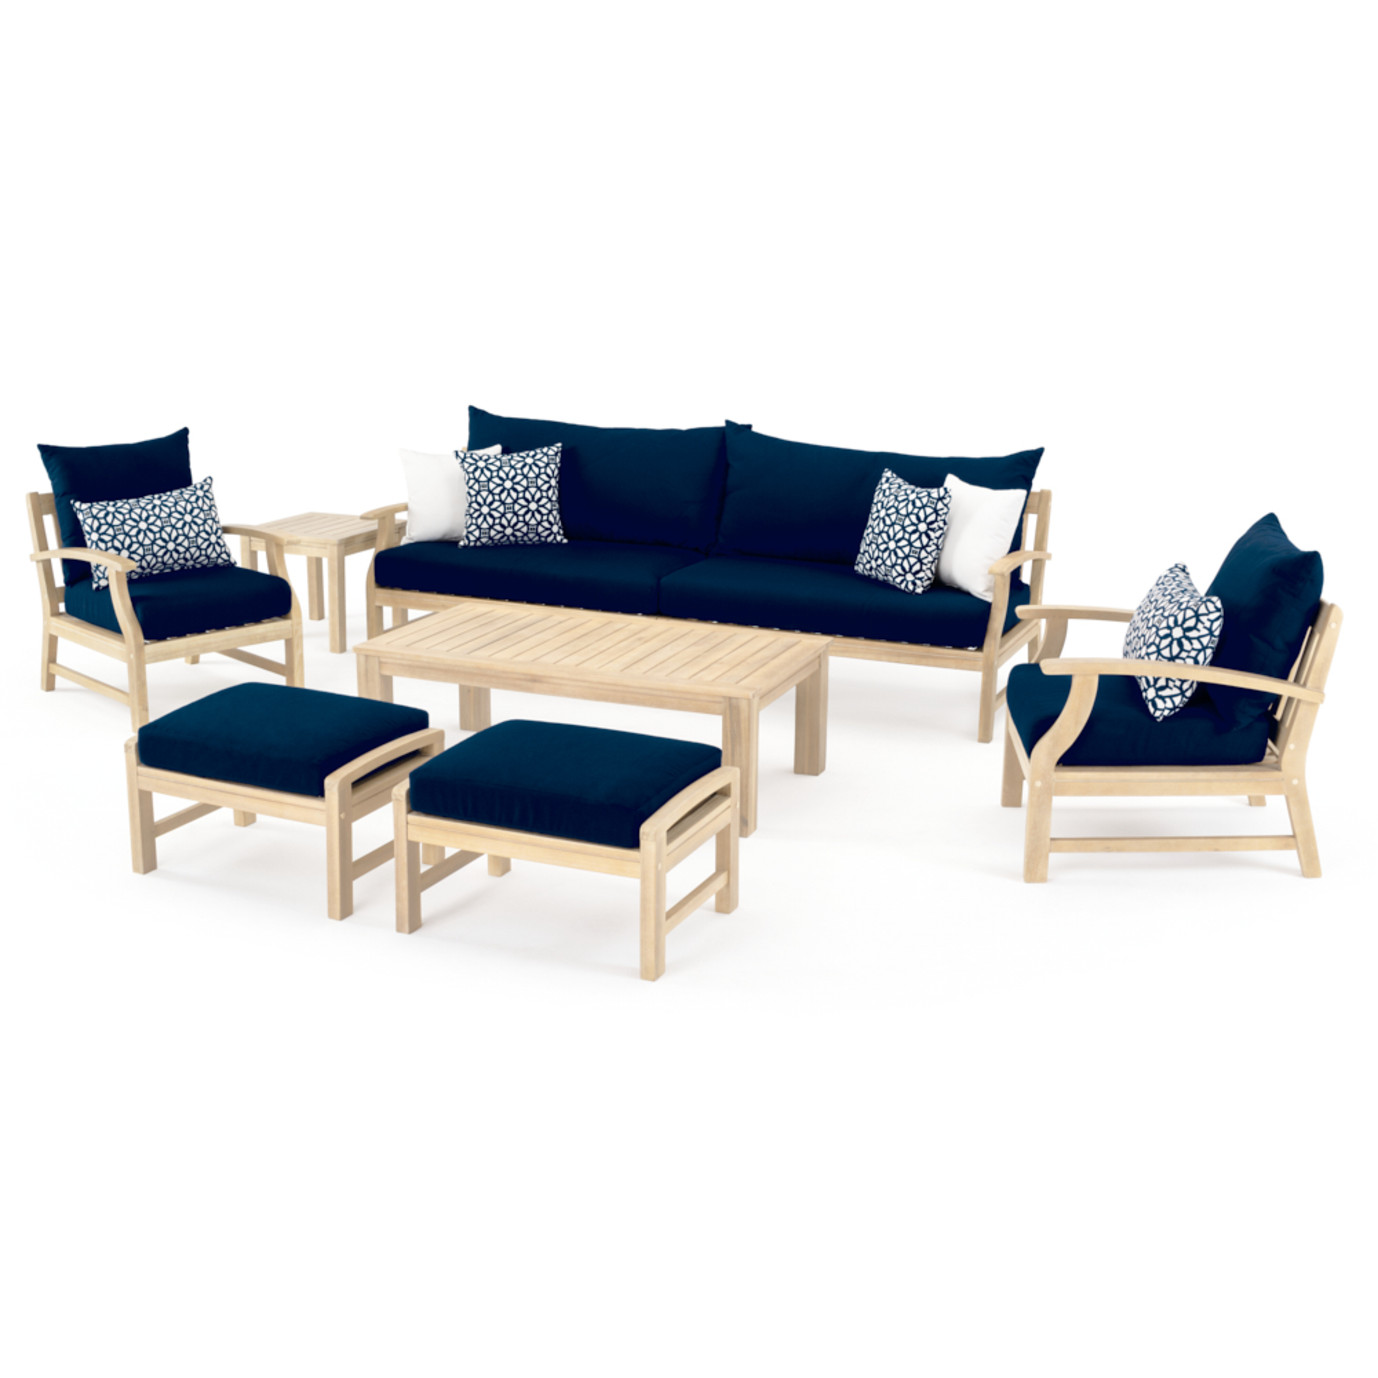 Kooper 8 Piece Sofa & Club Chair Set - Navy Blue